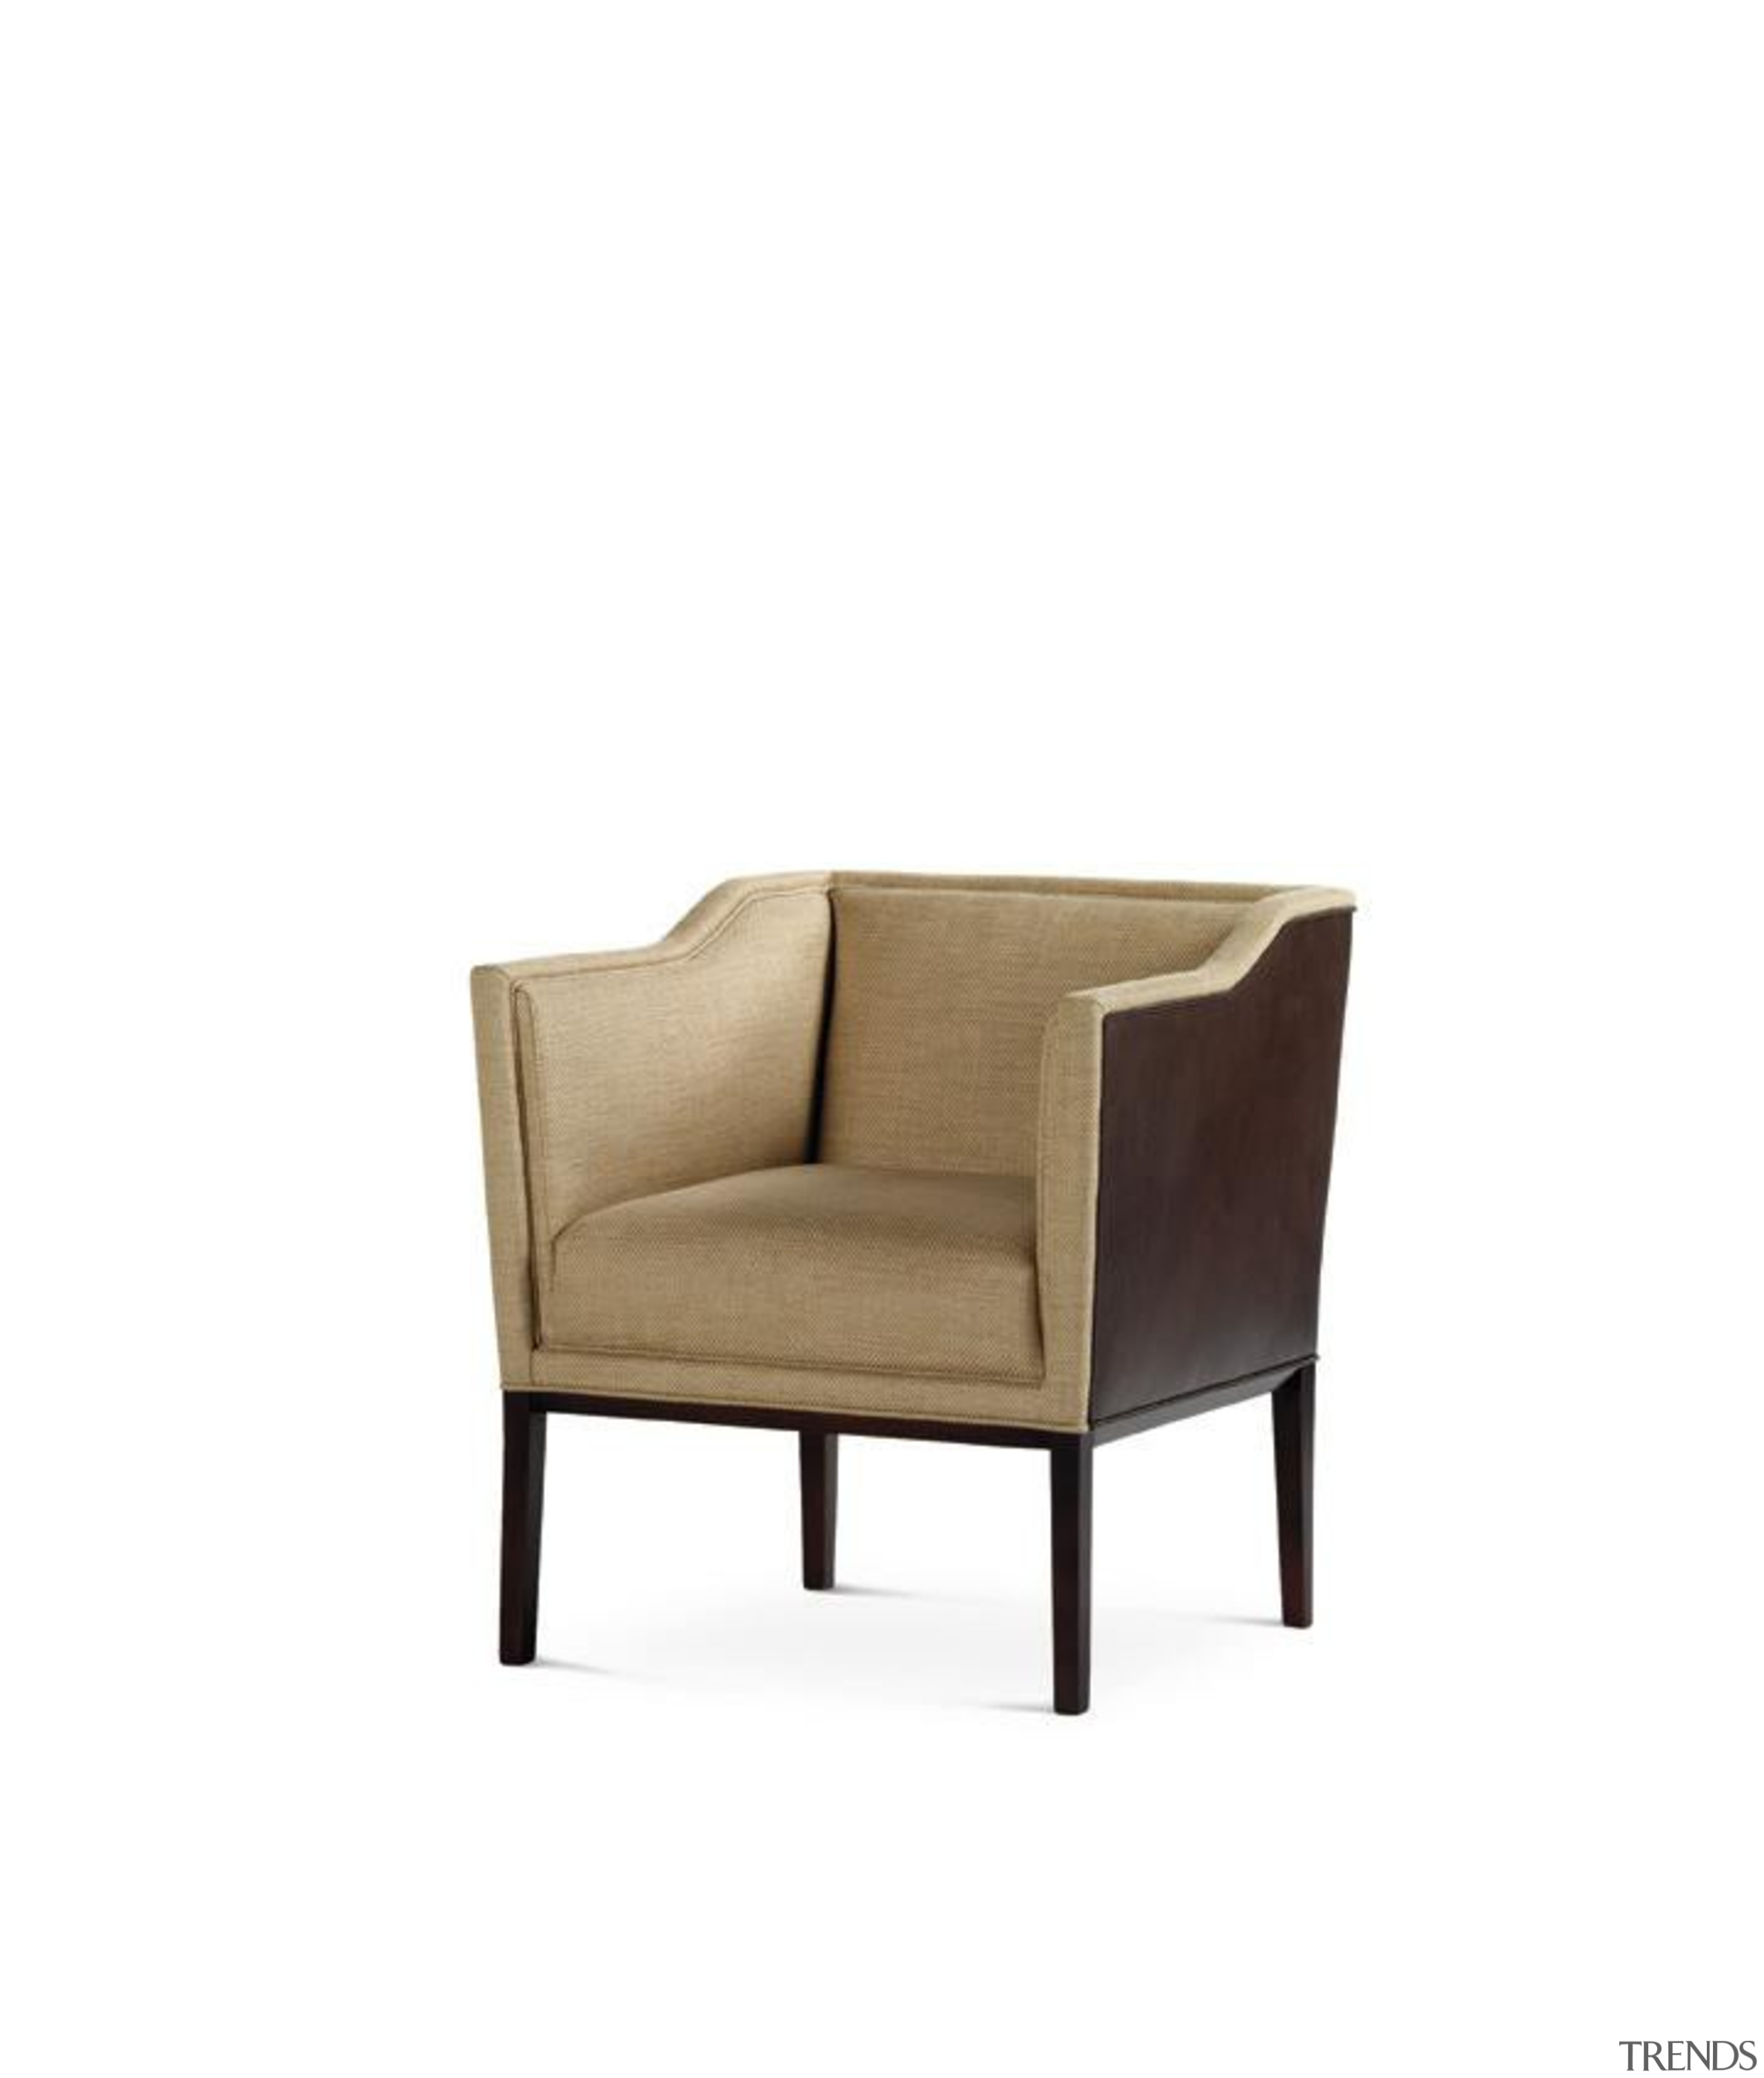 The work of William Sofield is defined not angle, armrest, chair, club chair, furniture, loveseat, product design, white